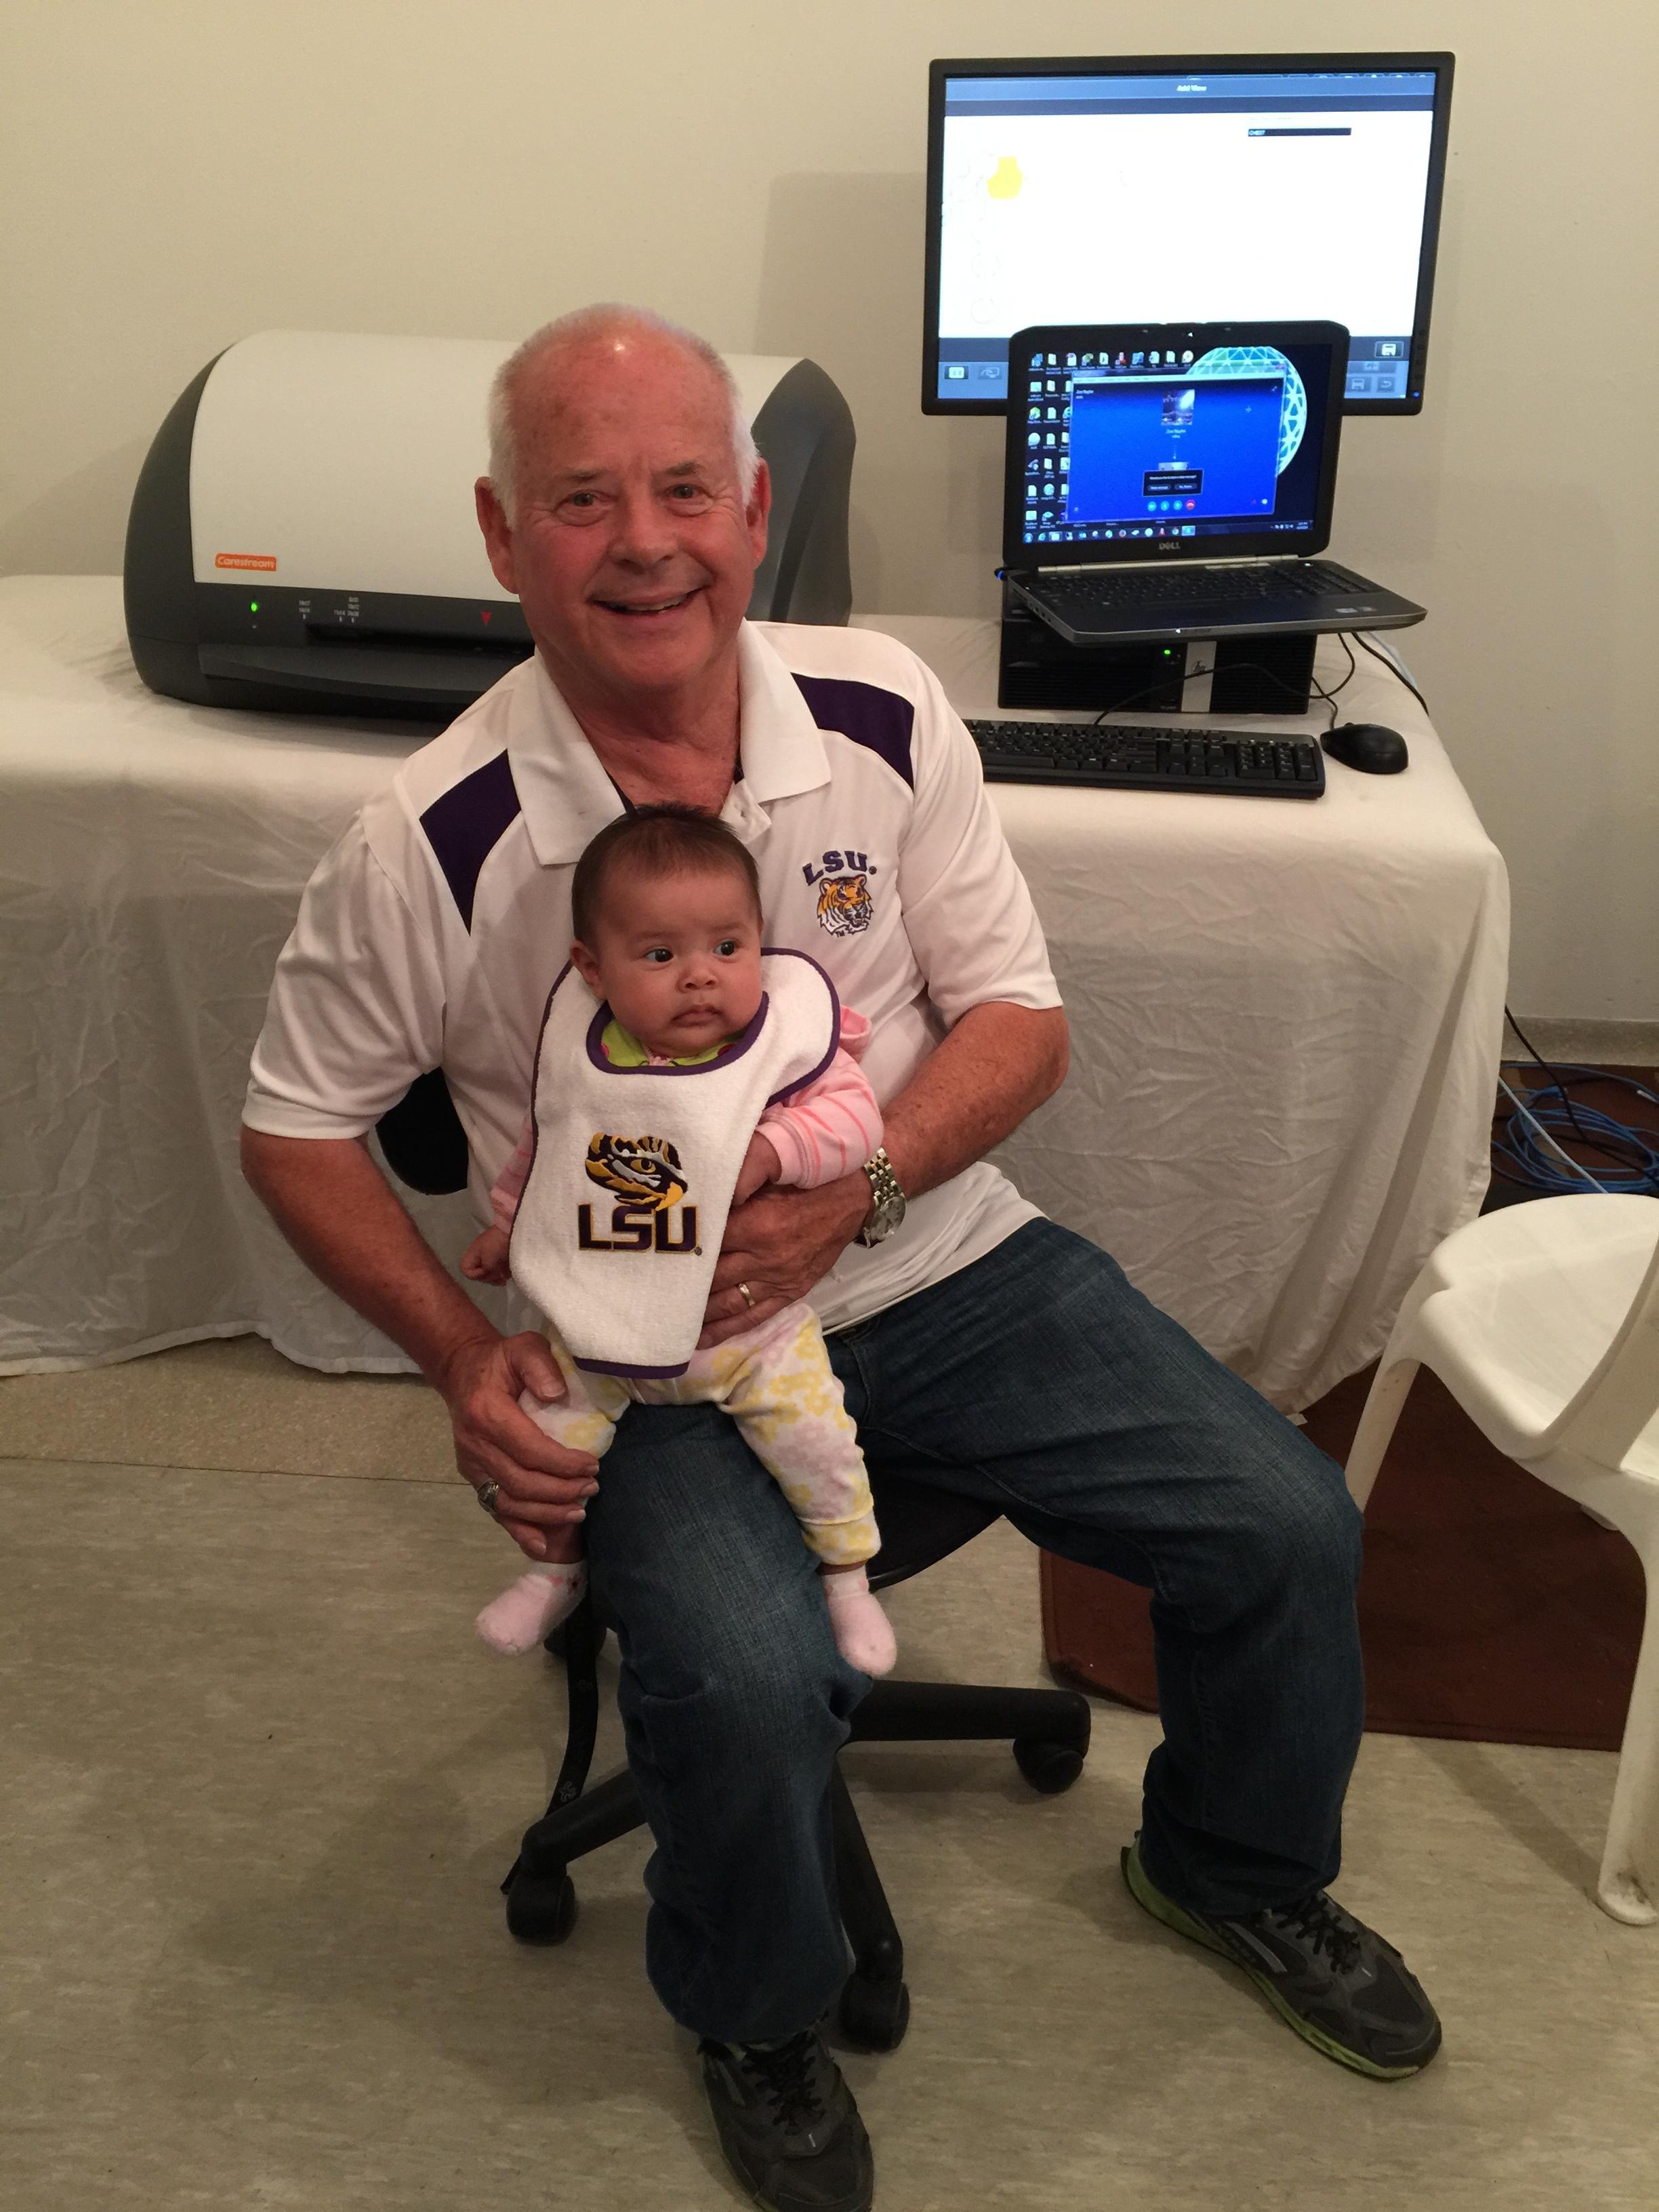 The youngest LSU fan sitting in front of the new digital x-ray setup.